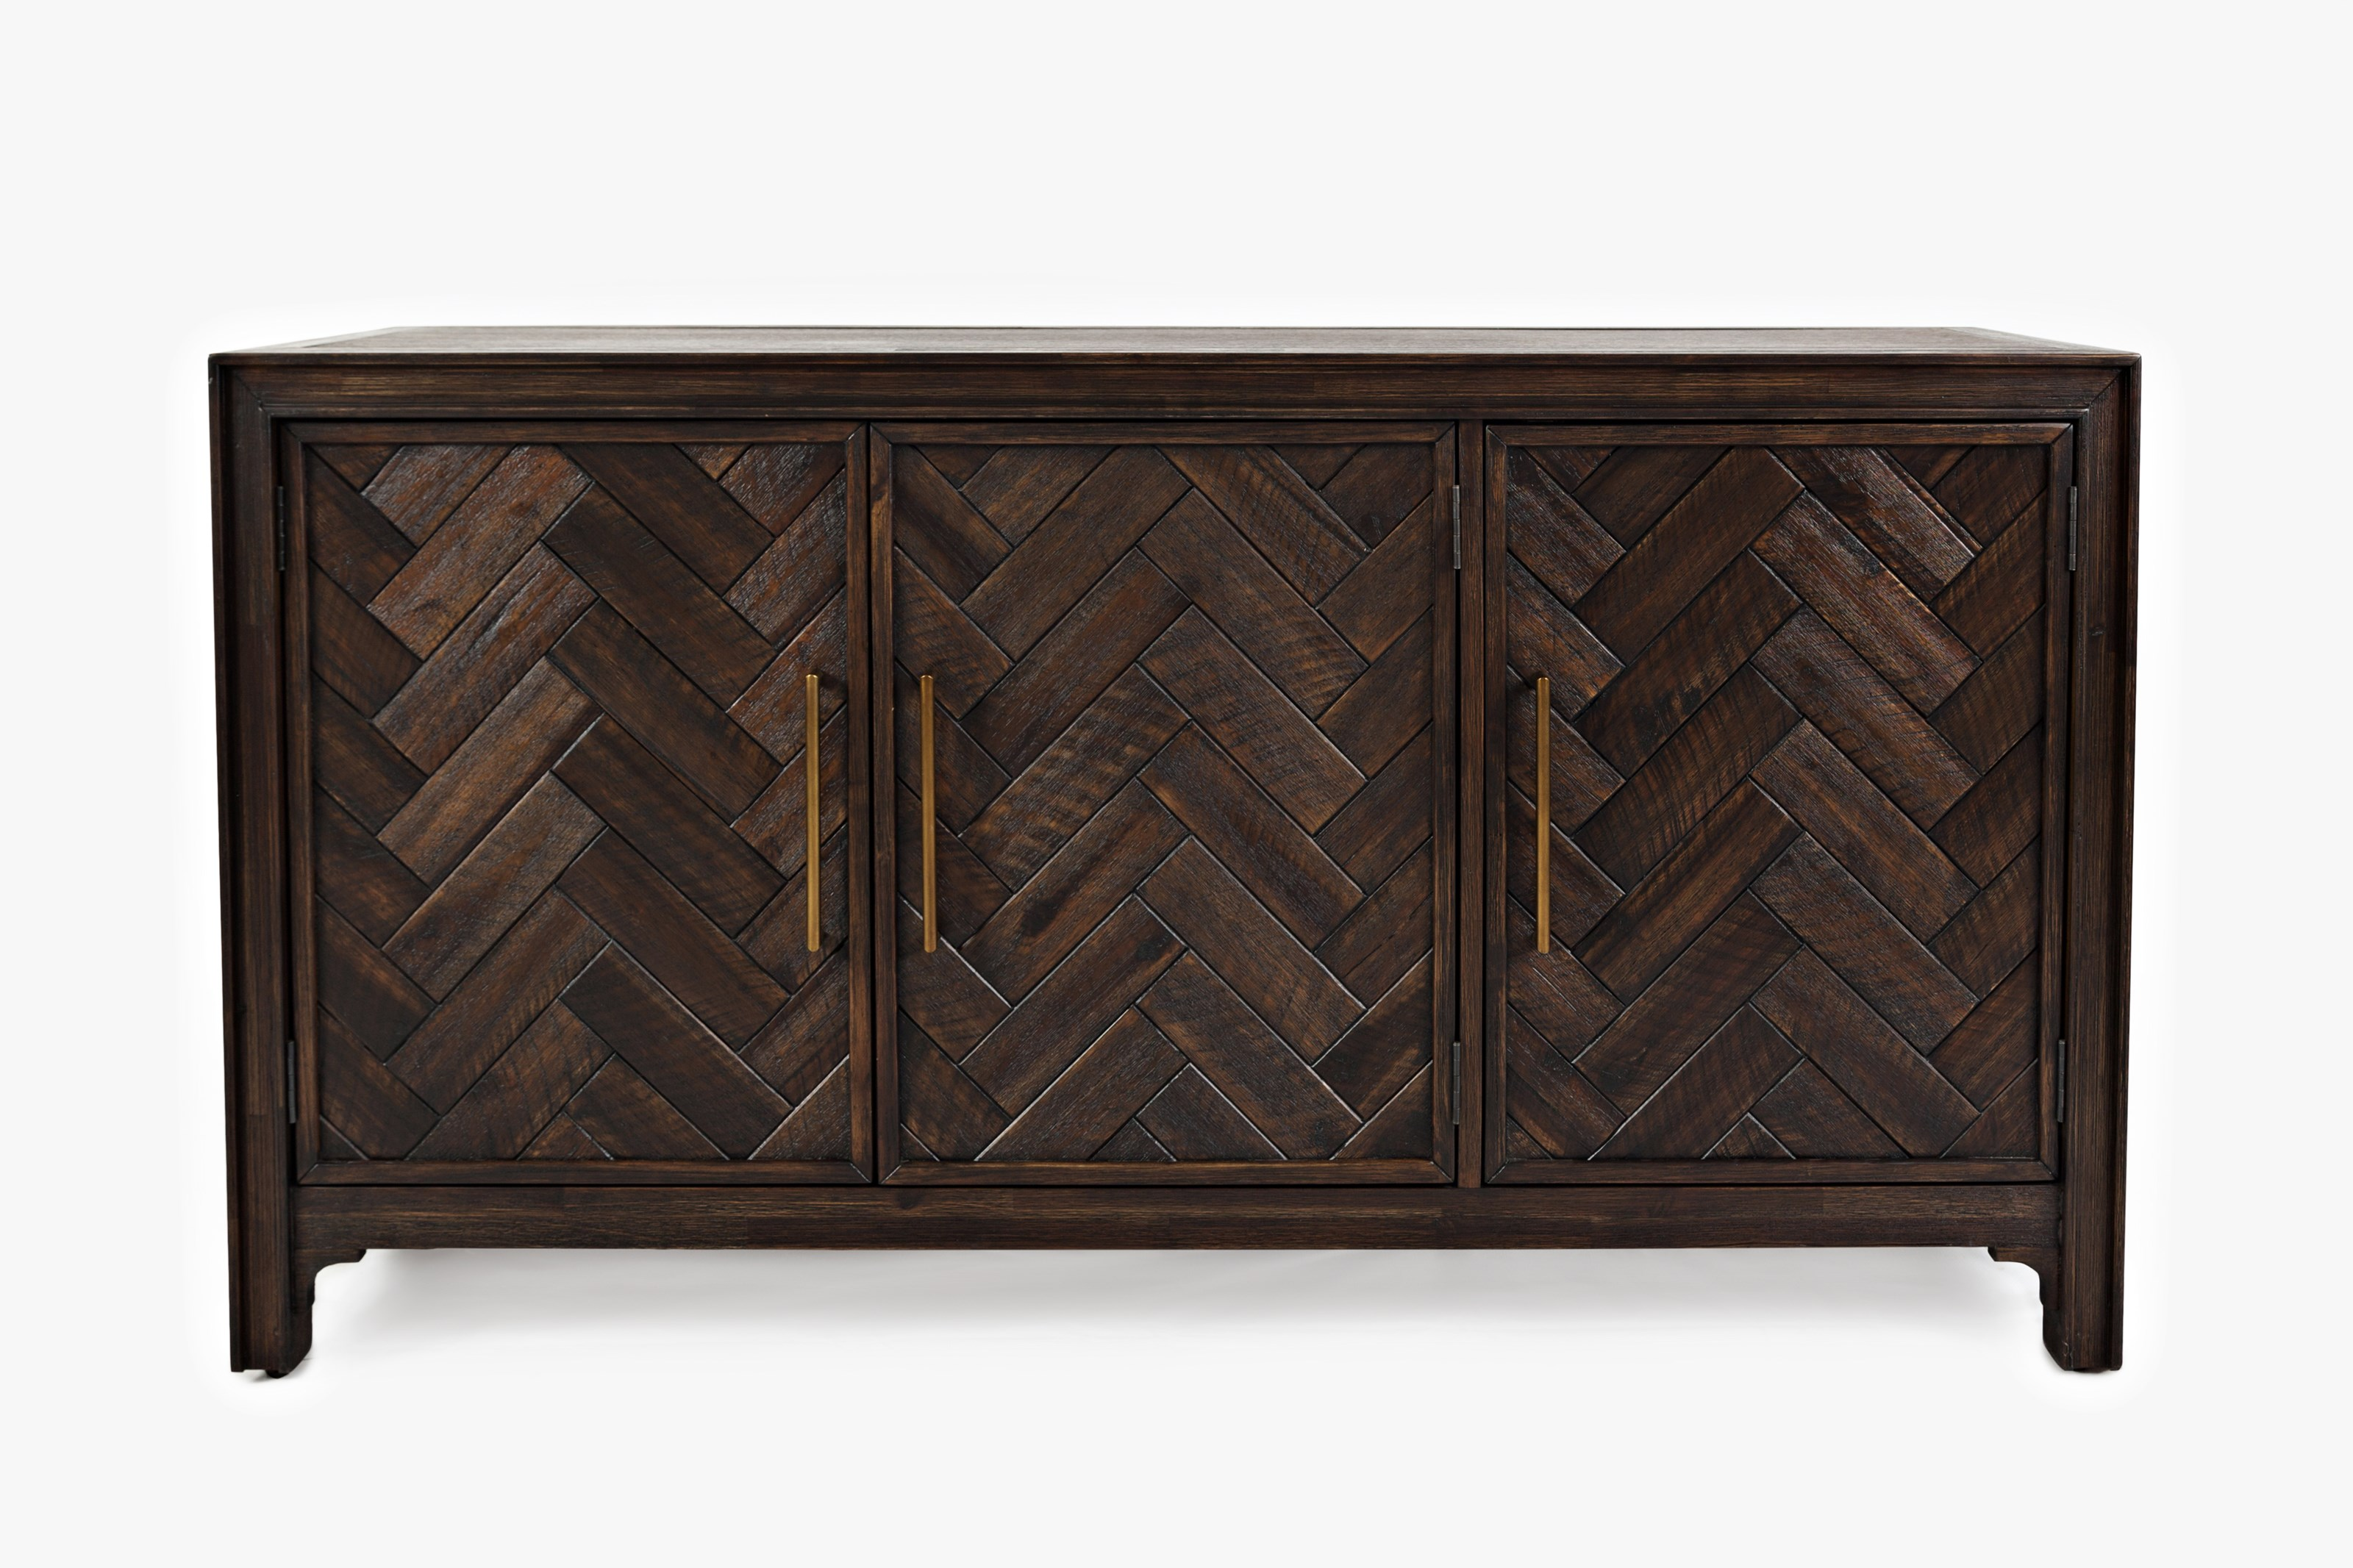 Gramercy 3 Door Accent Cabinet by Jofran at Beck's Furniture